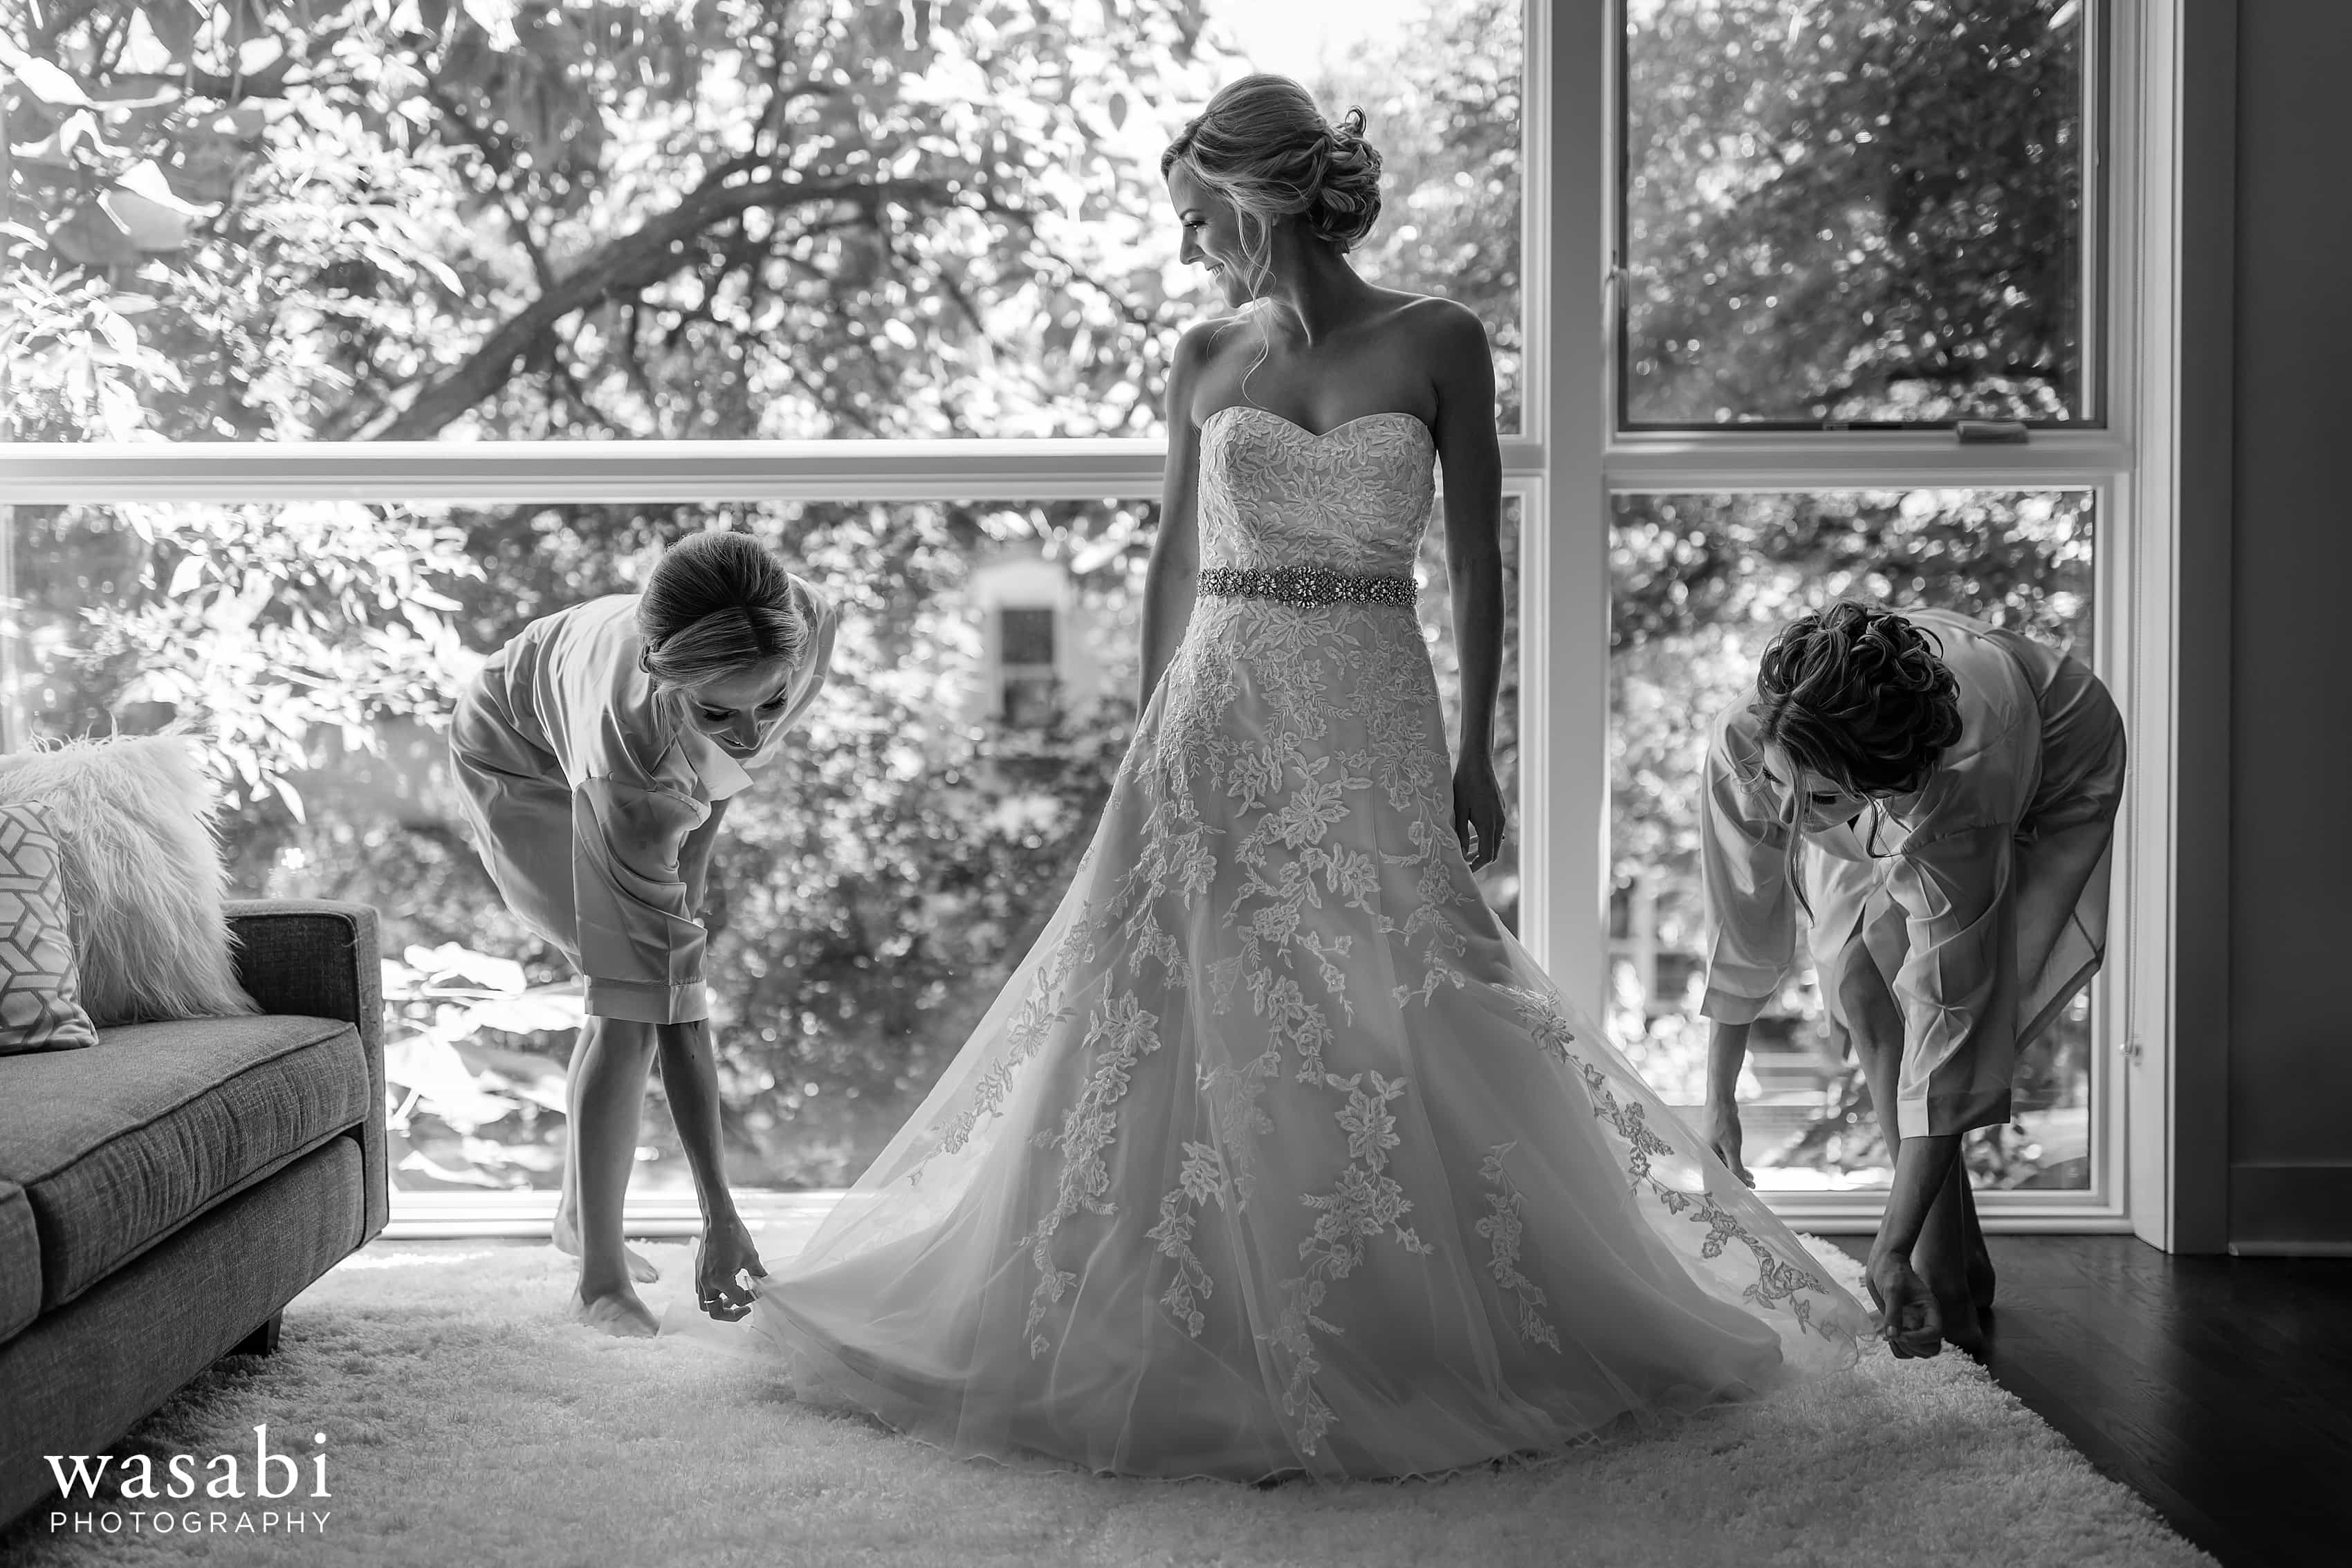 Bridesmaids help bride into dress at her home while getting ready for wedding